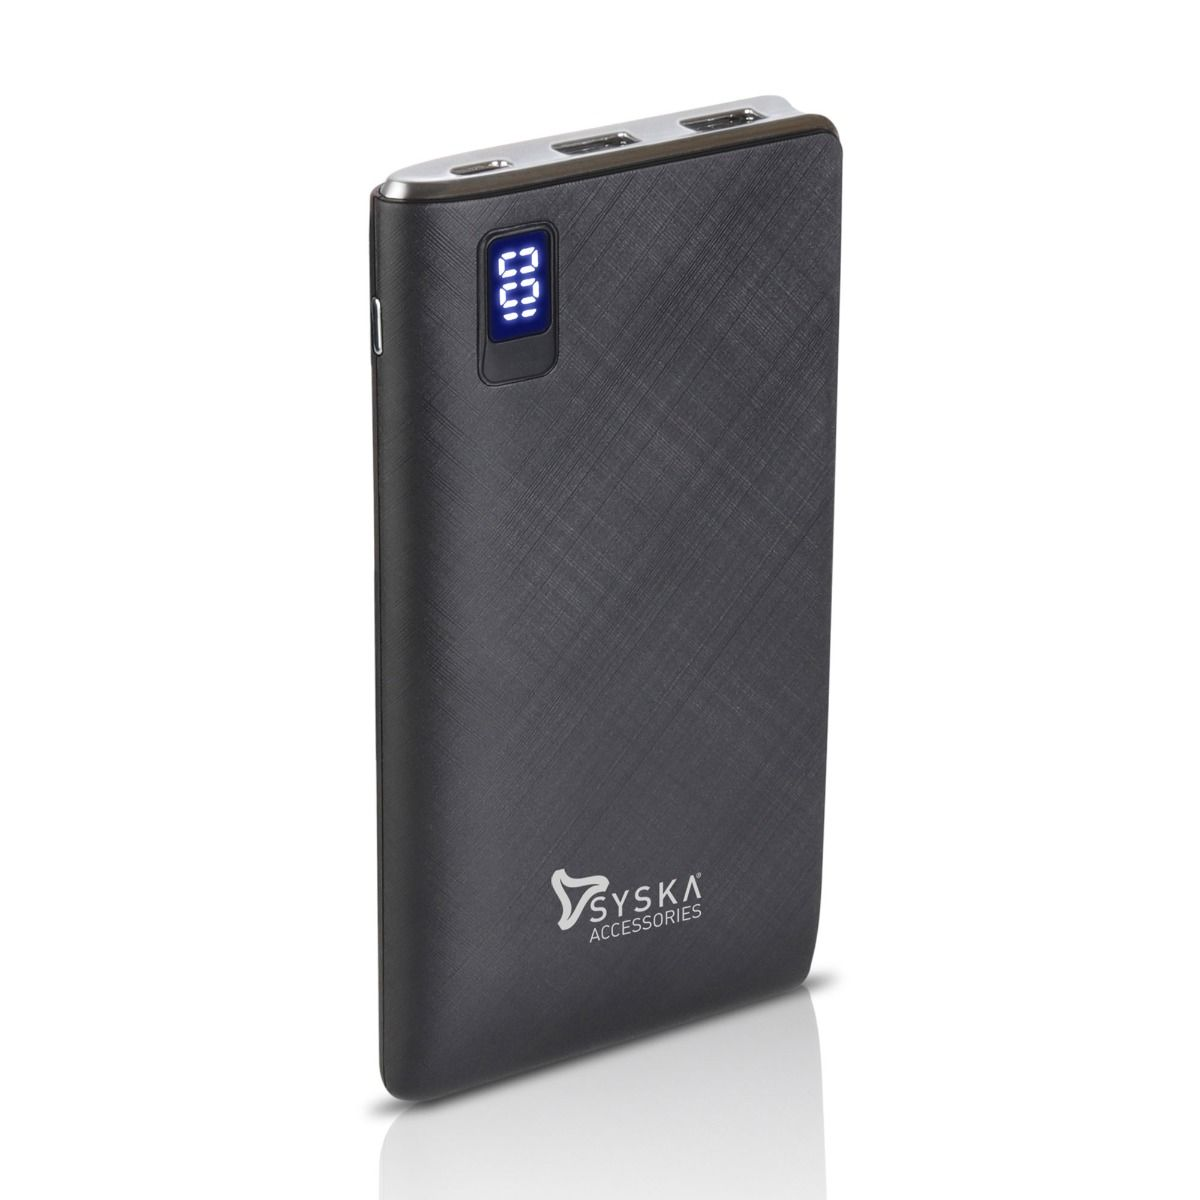 Syska Power Boost 100 Power Bank P1013B